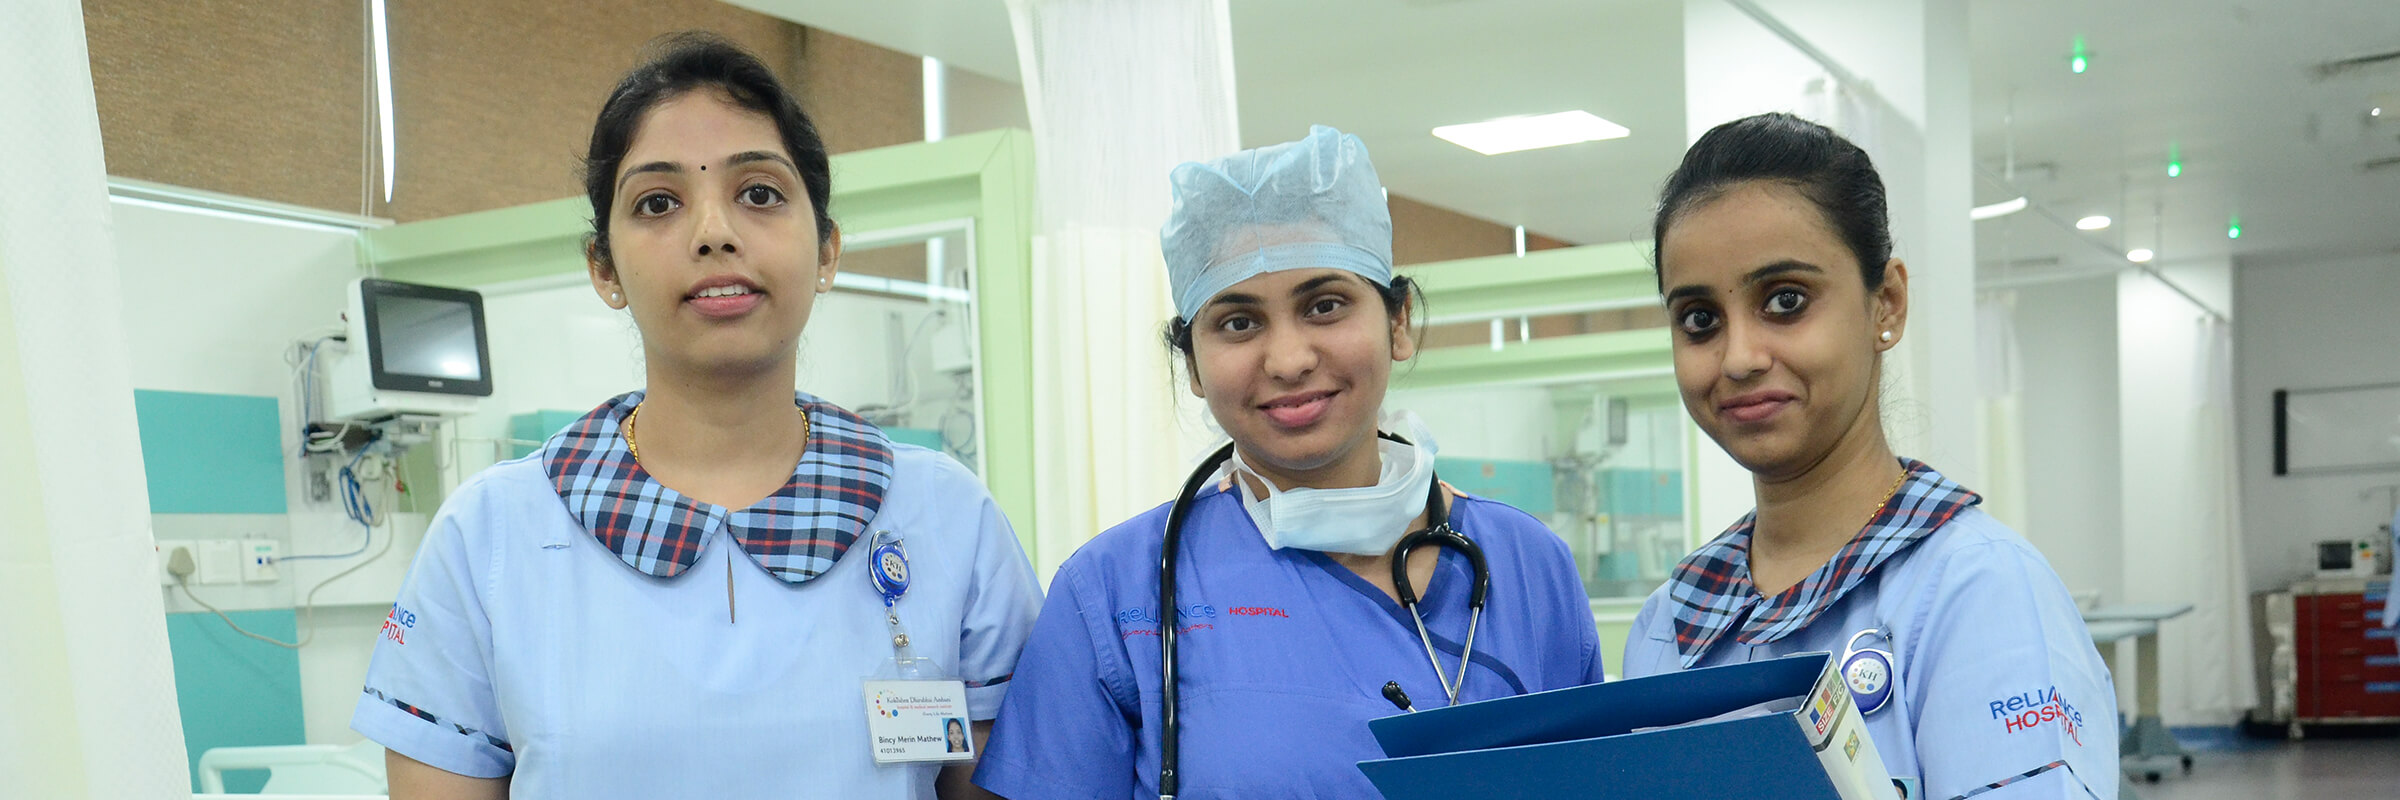 why join us at reliance hospital